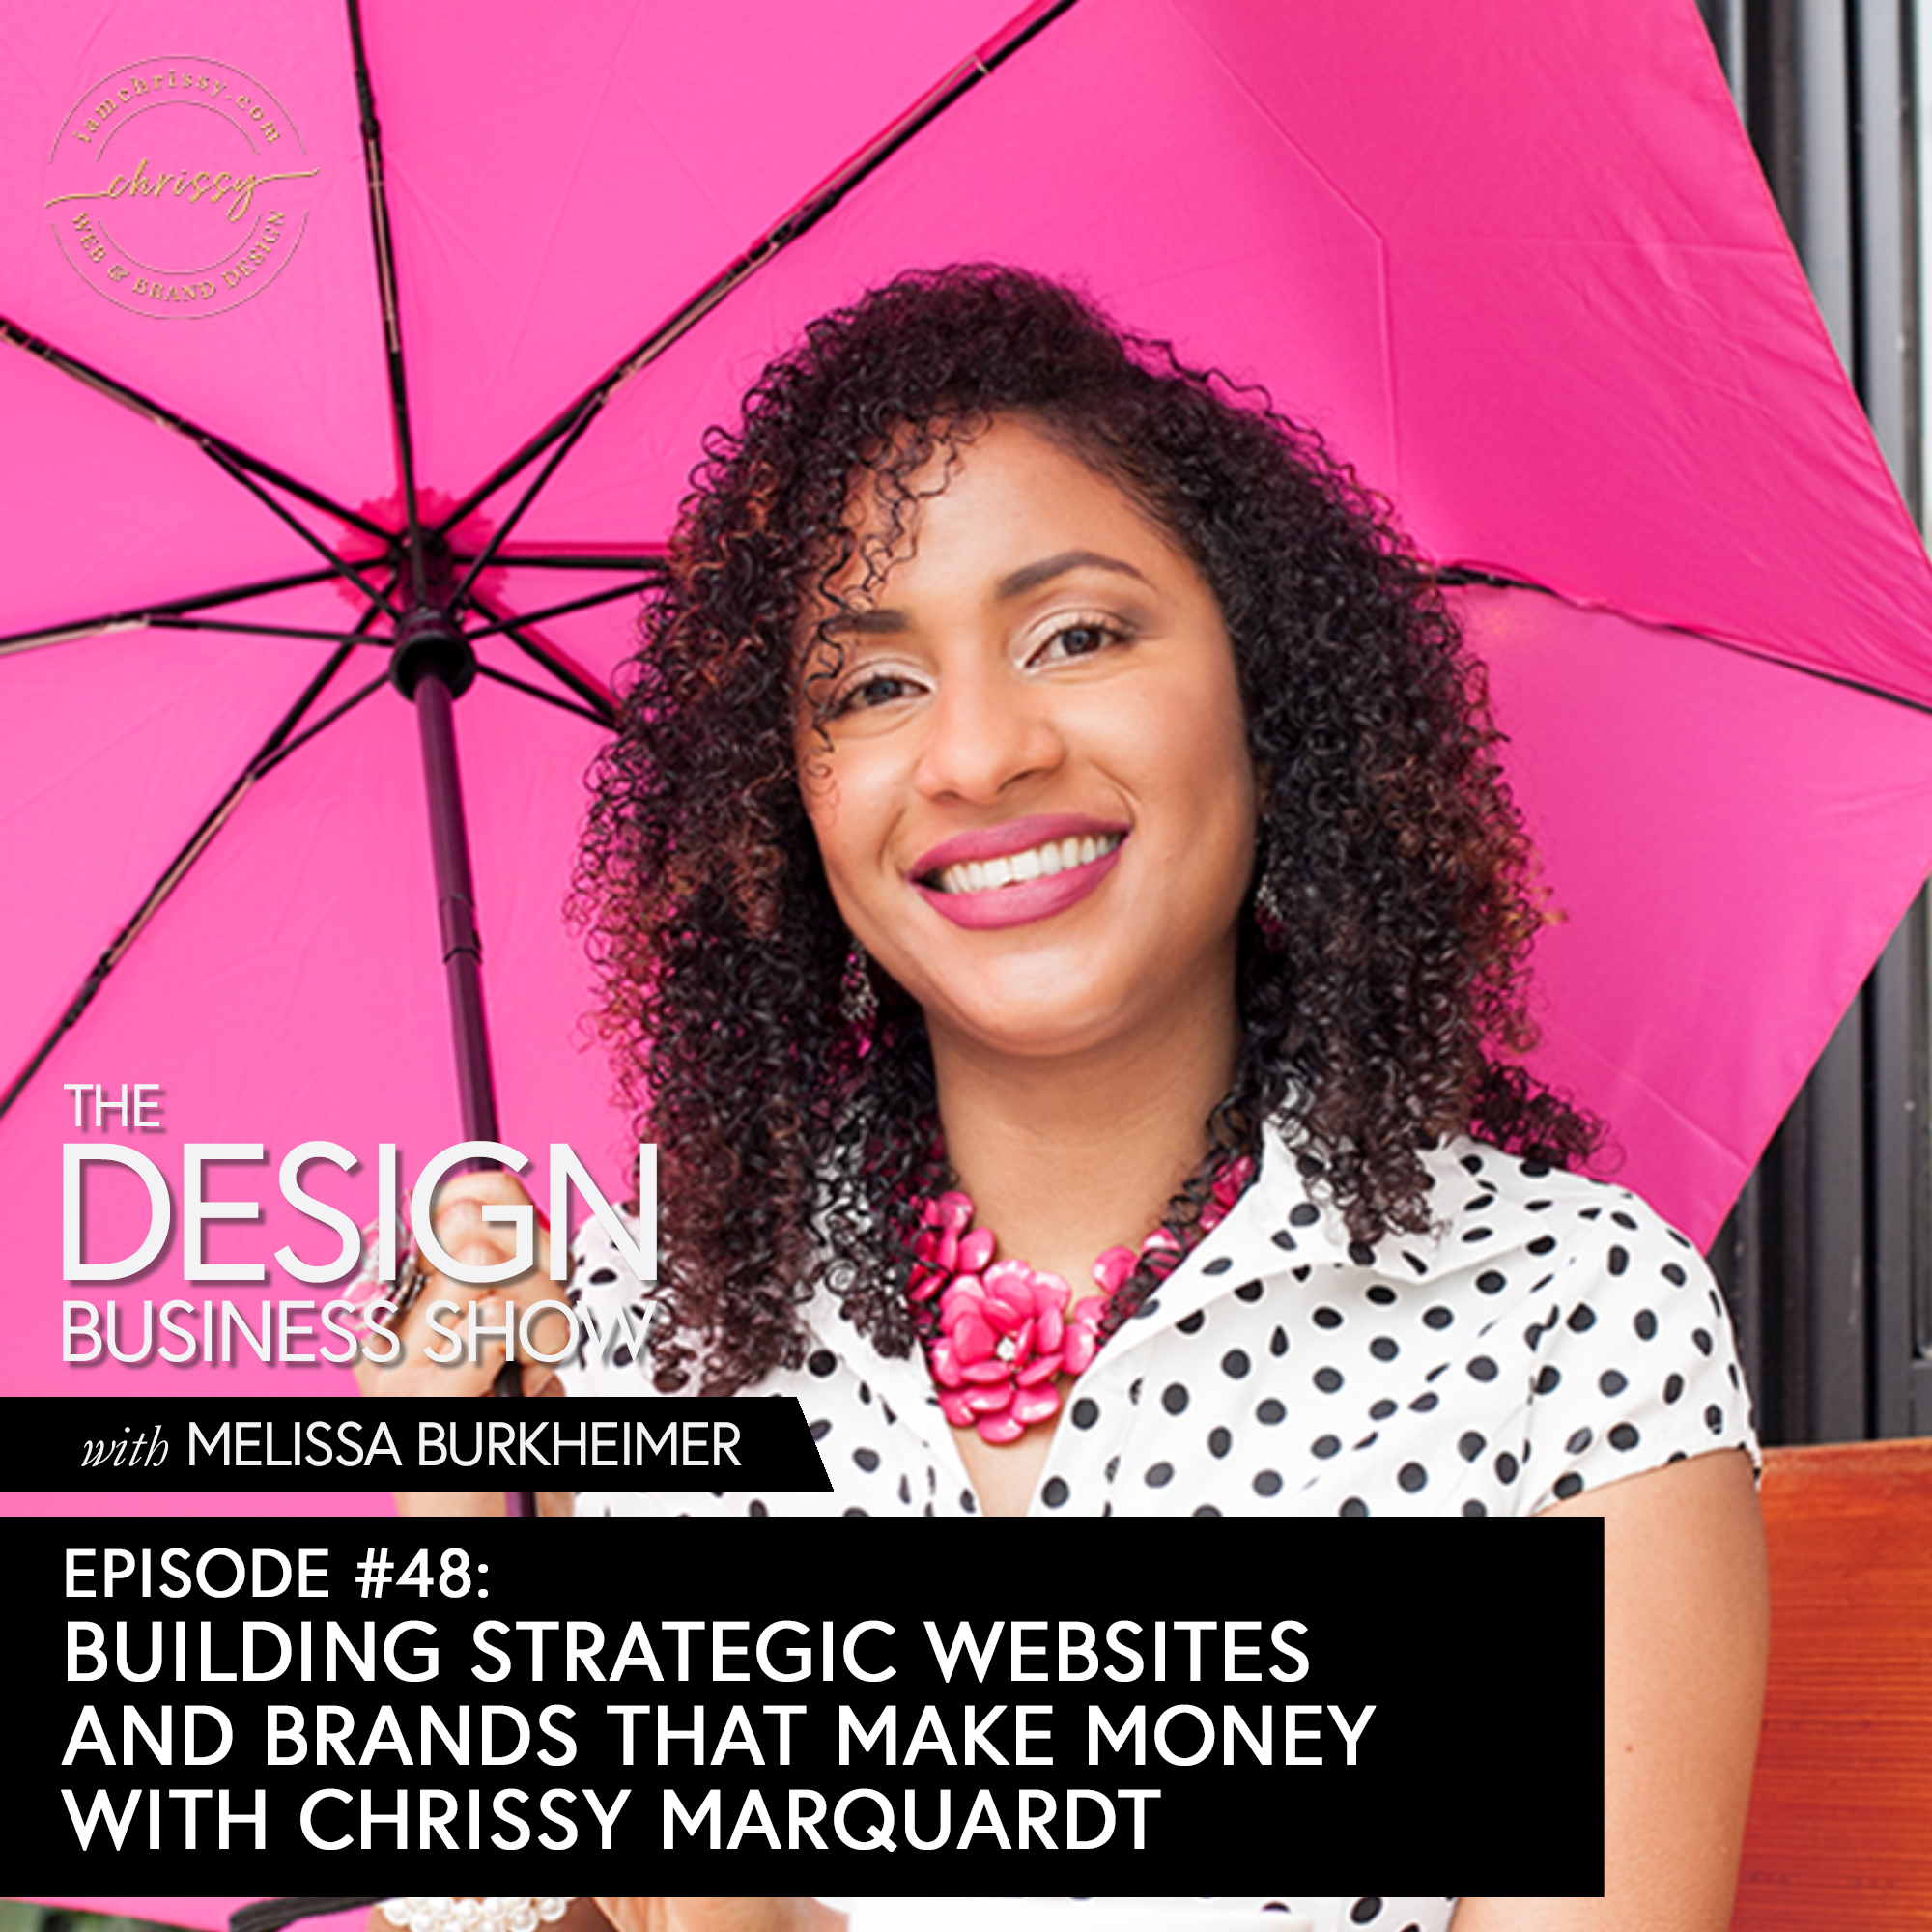 Check out episode 48 of The Design Business Show with Chrissy Marquardt to learn how she creates websites that make money, learned to say no early on, and her process for managing projects!